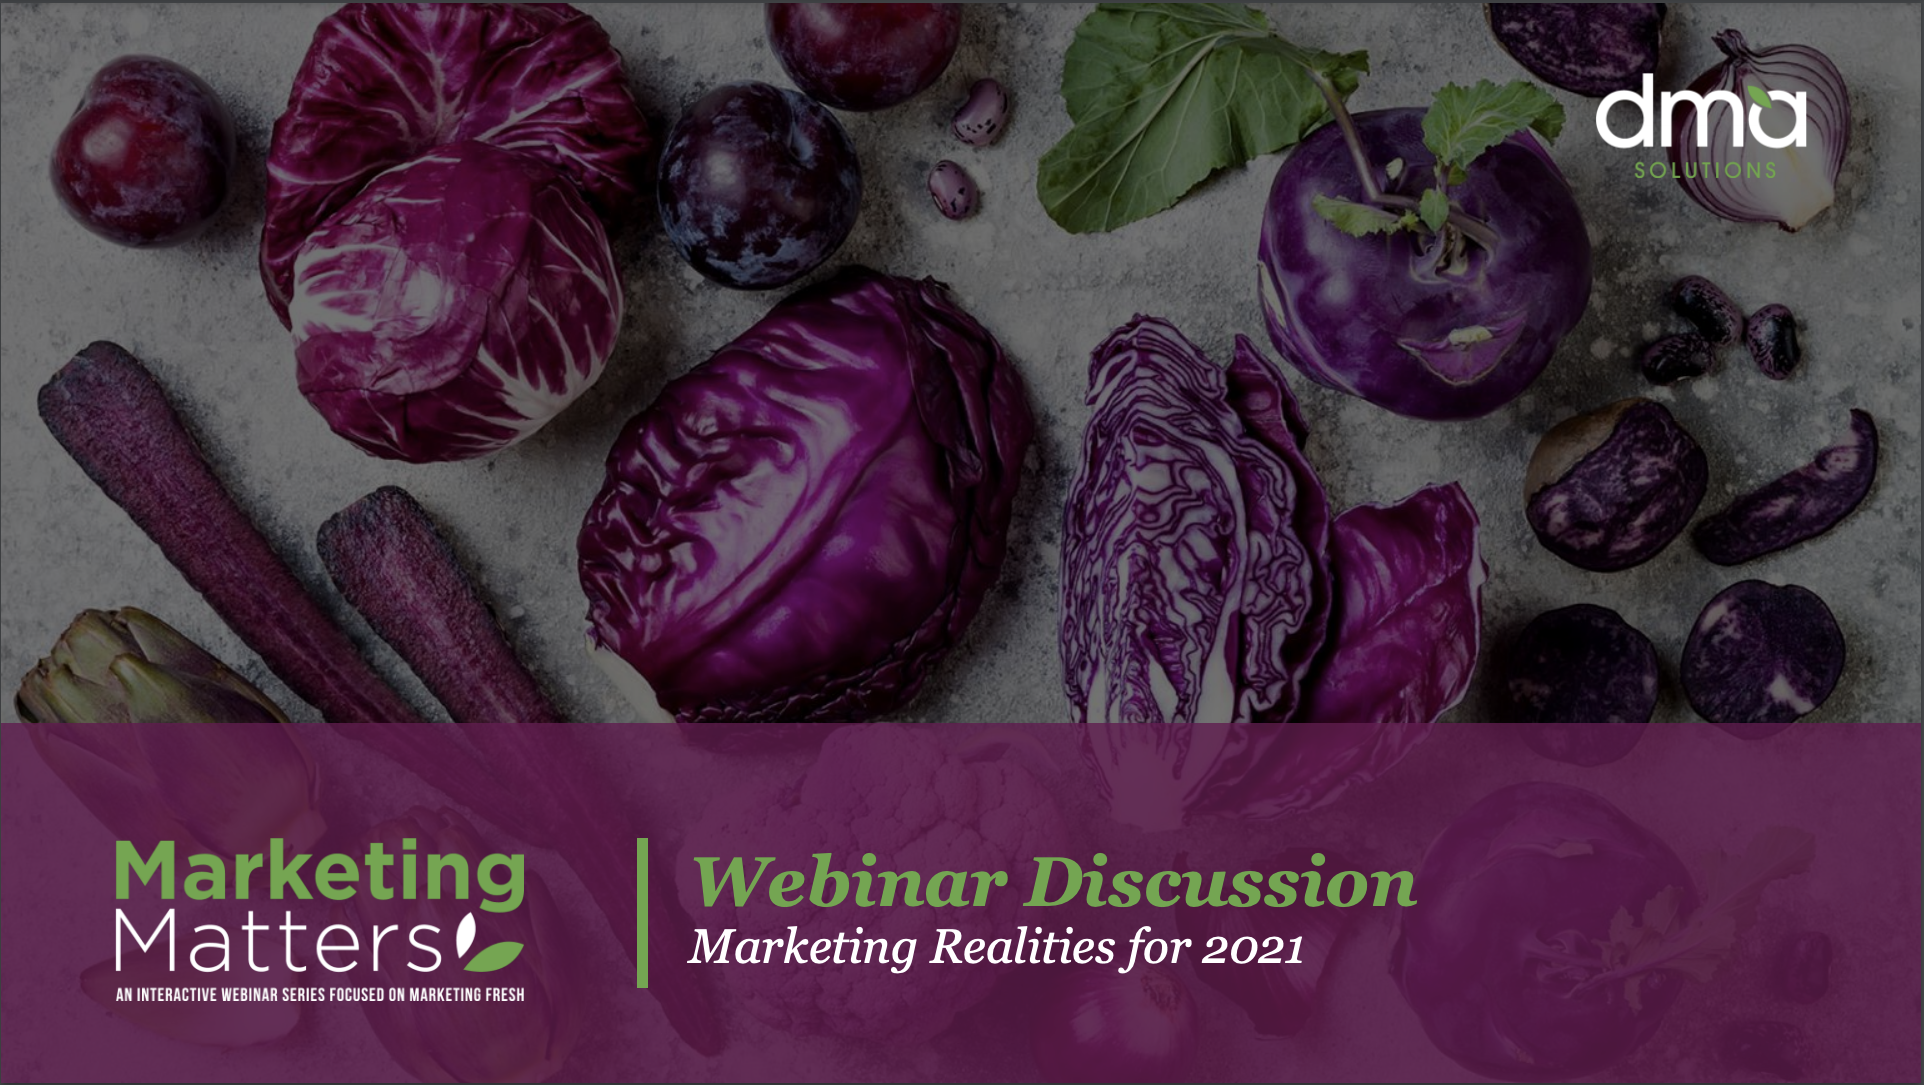 13 Marketing Realities in 2021